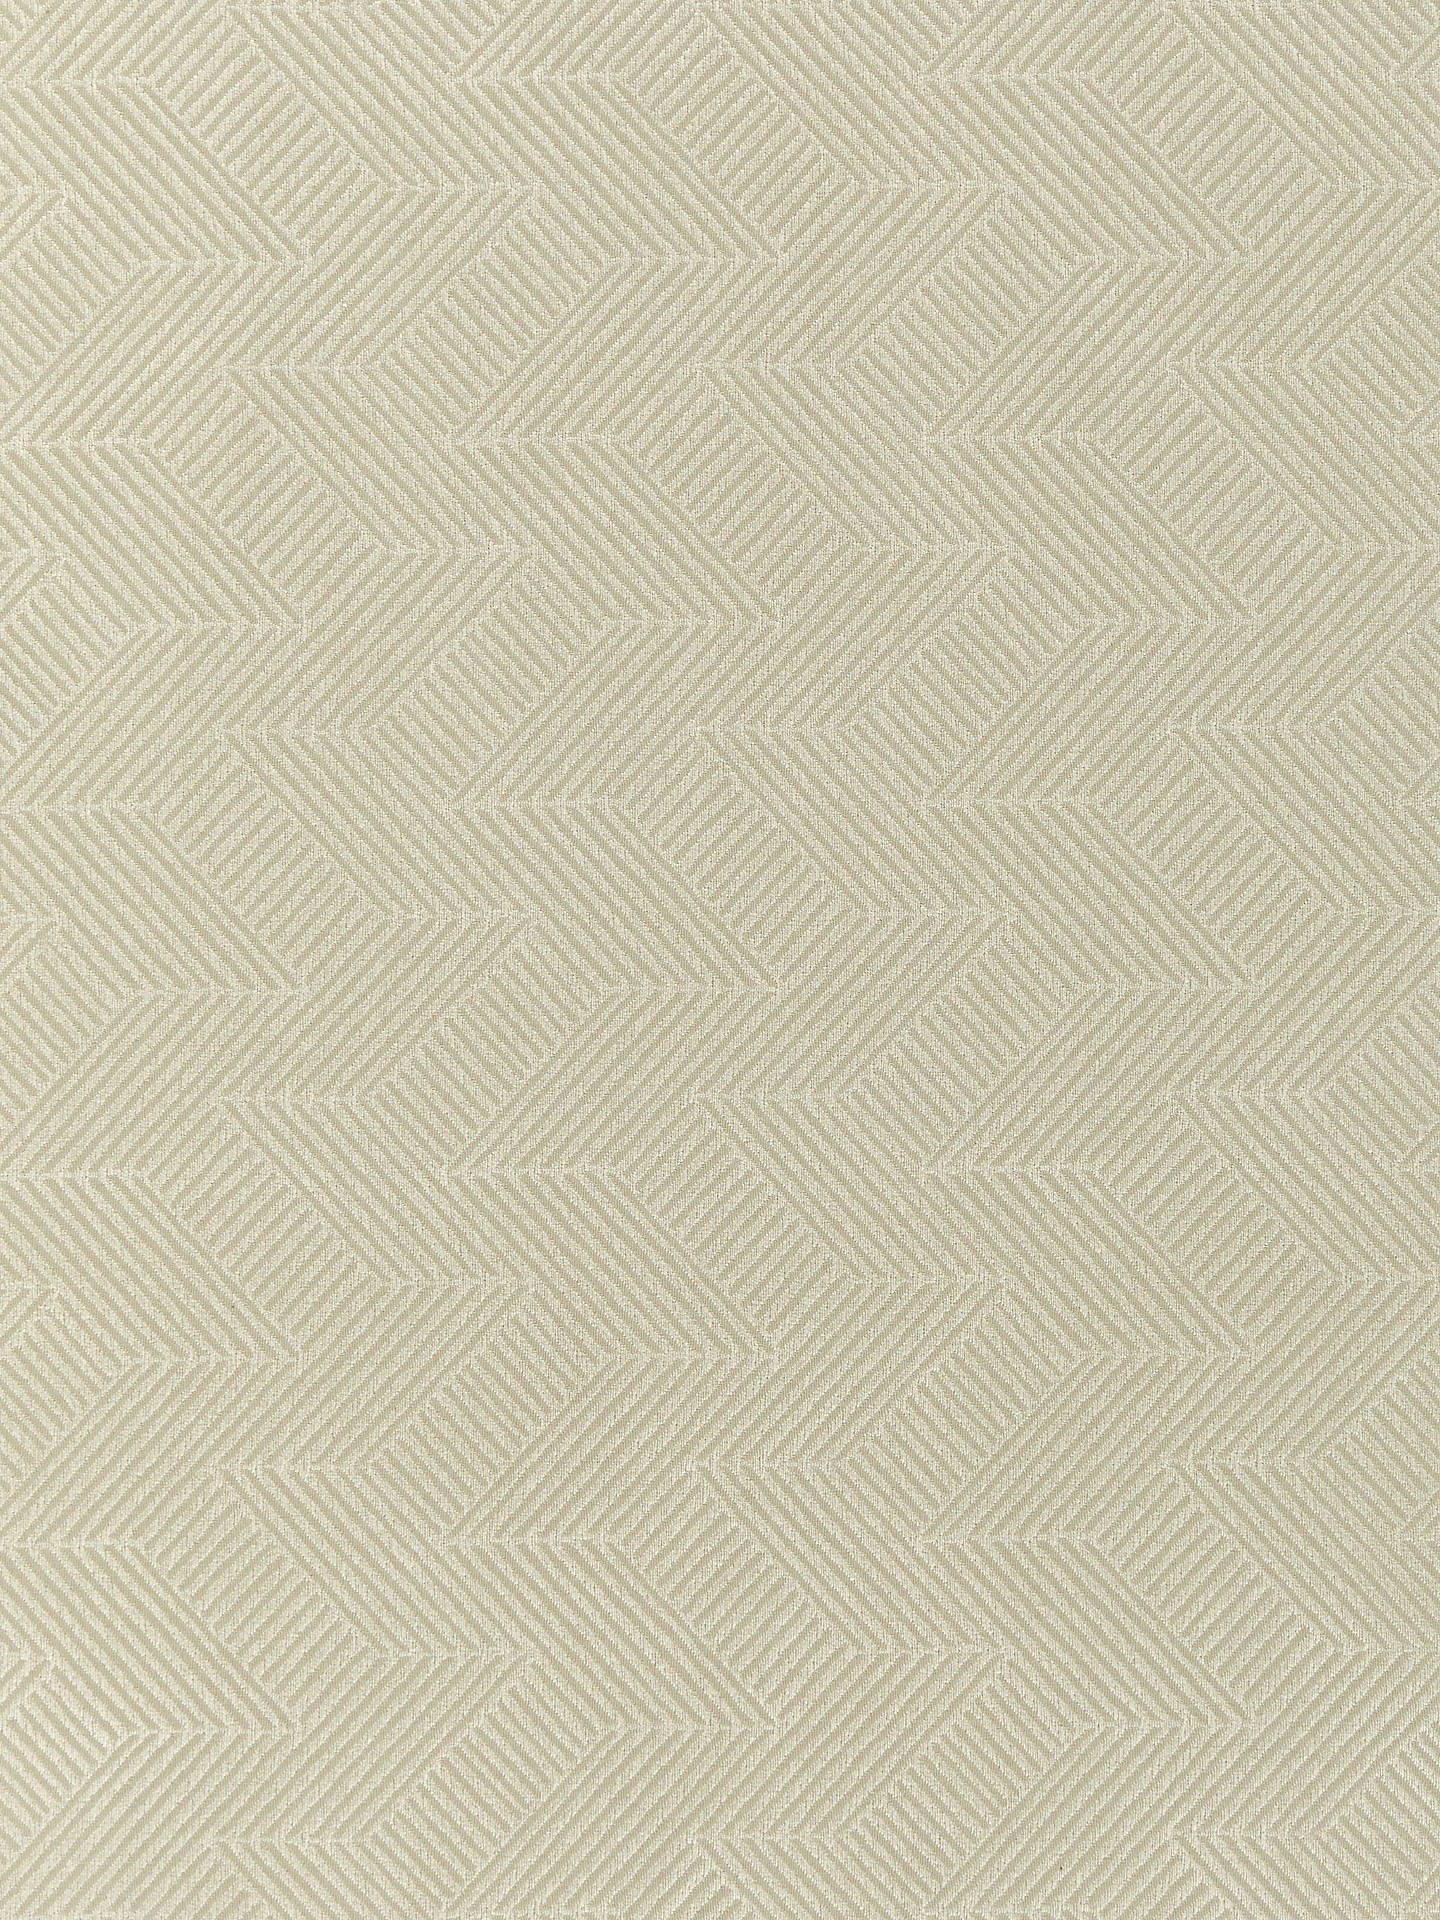 Buy John Lewis & Partners Esher Furnishing Fabric, Gold Online at johnlewis.com